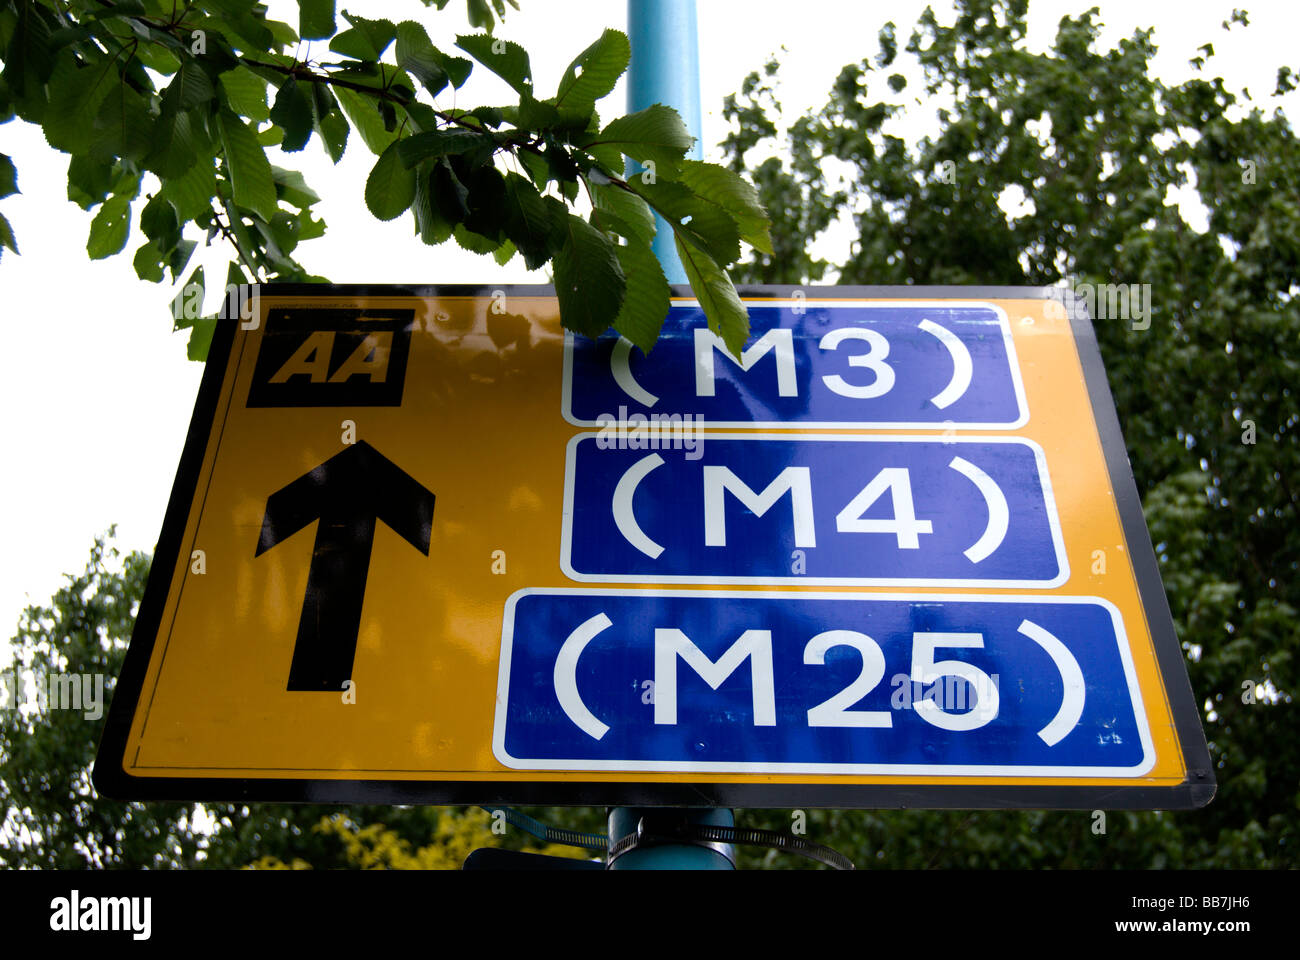 british aa road sign showing directions to motorways m3, m4 and m25, adjacent to twickenham stadium, middlesex, - Stock Image